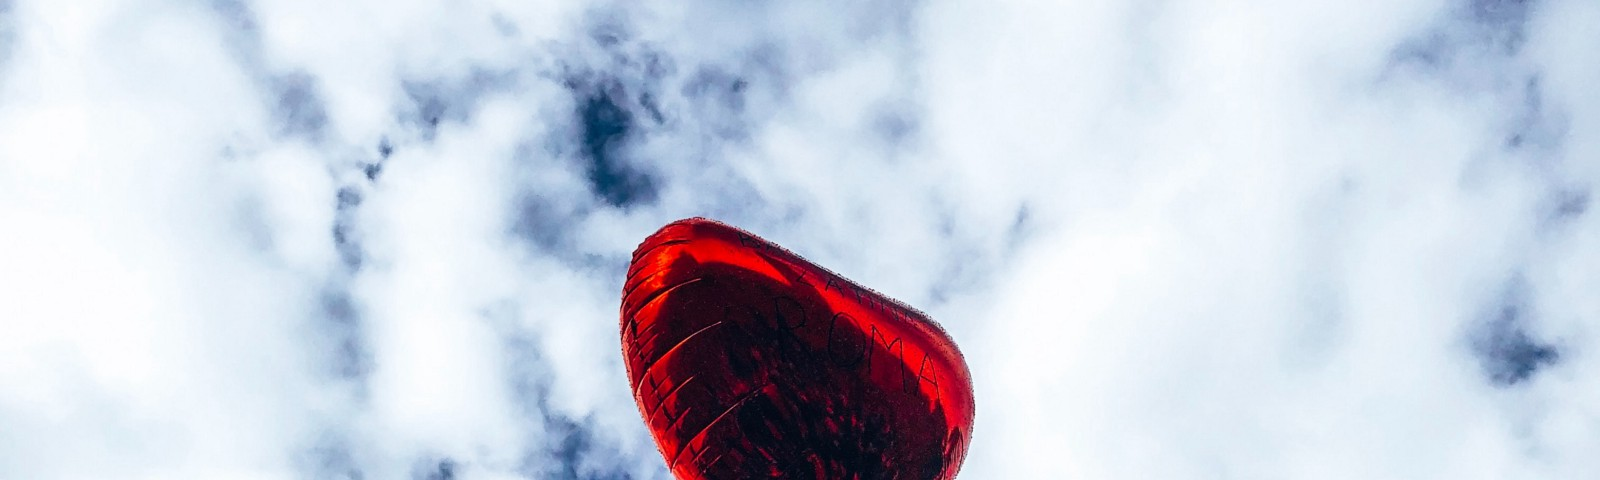 Red mylar heart balloon up in the blue sky surrounded by white fluffy clouds